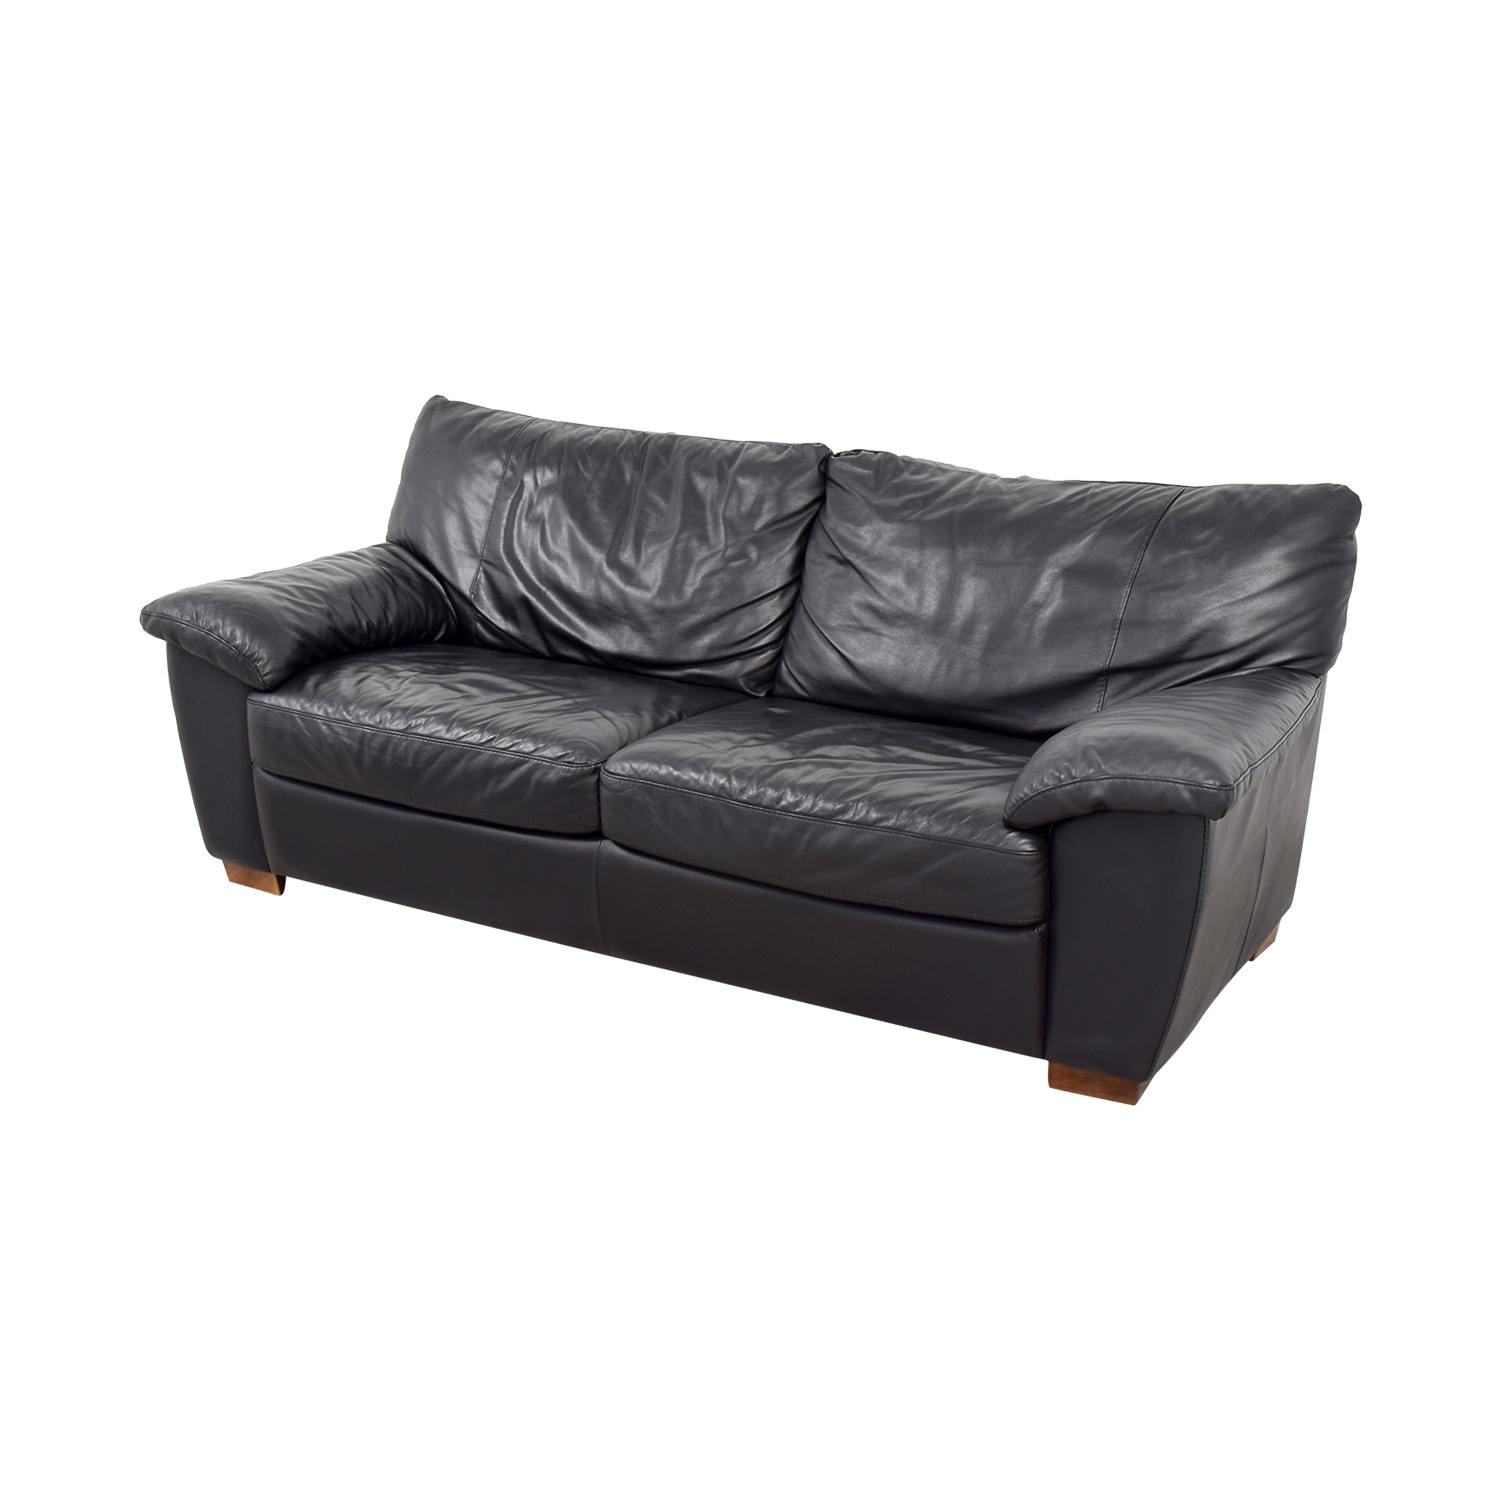 IKEA IKEA Black Leather Two-Cushion Couch Black